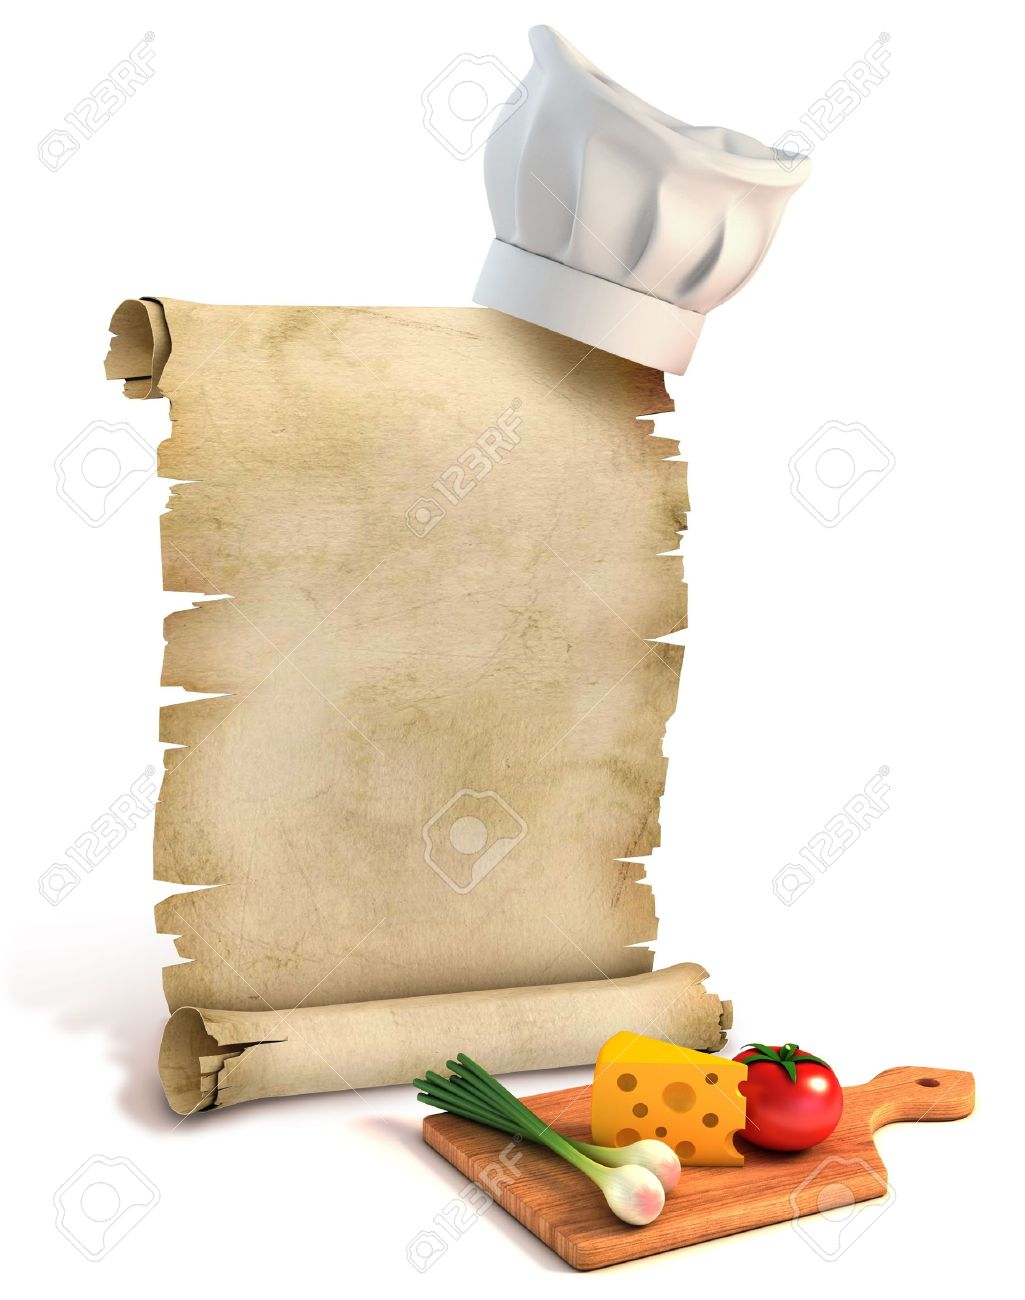 background for recipes, cooking tips, menu Stock Photo - 12331451